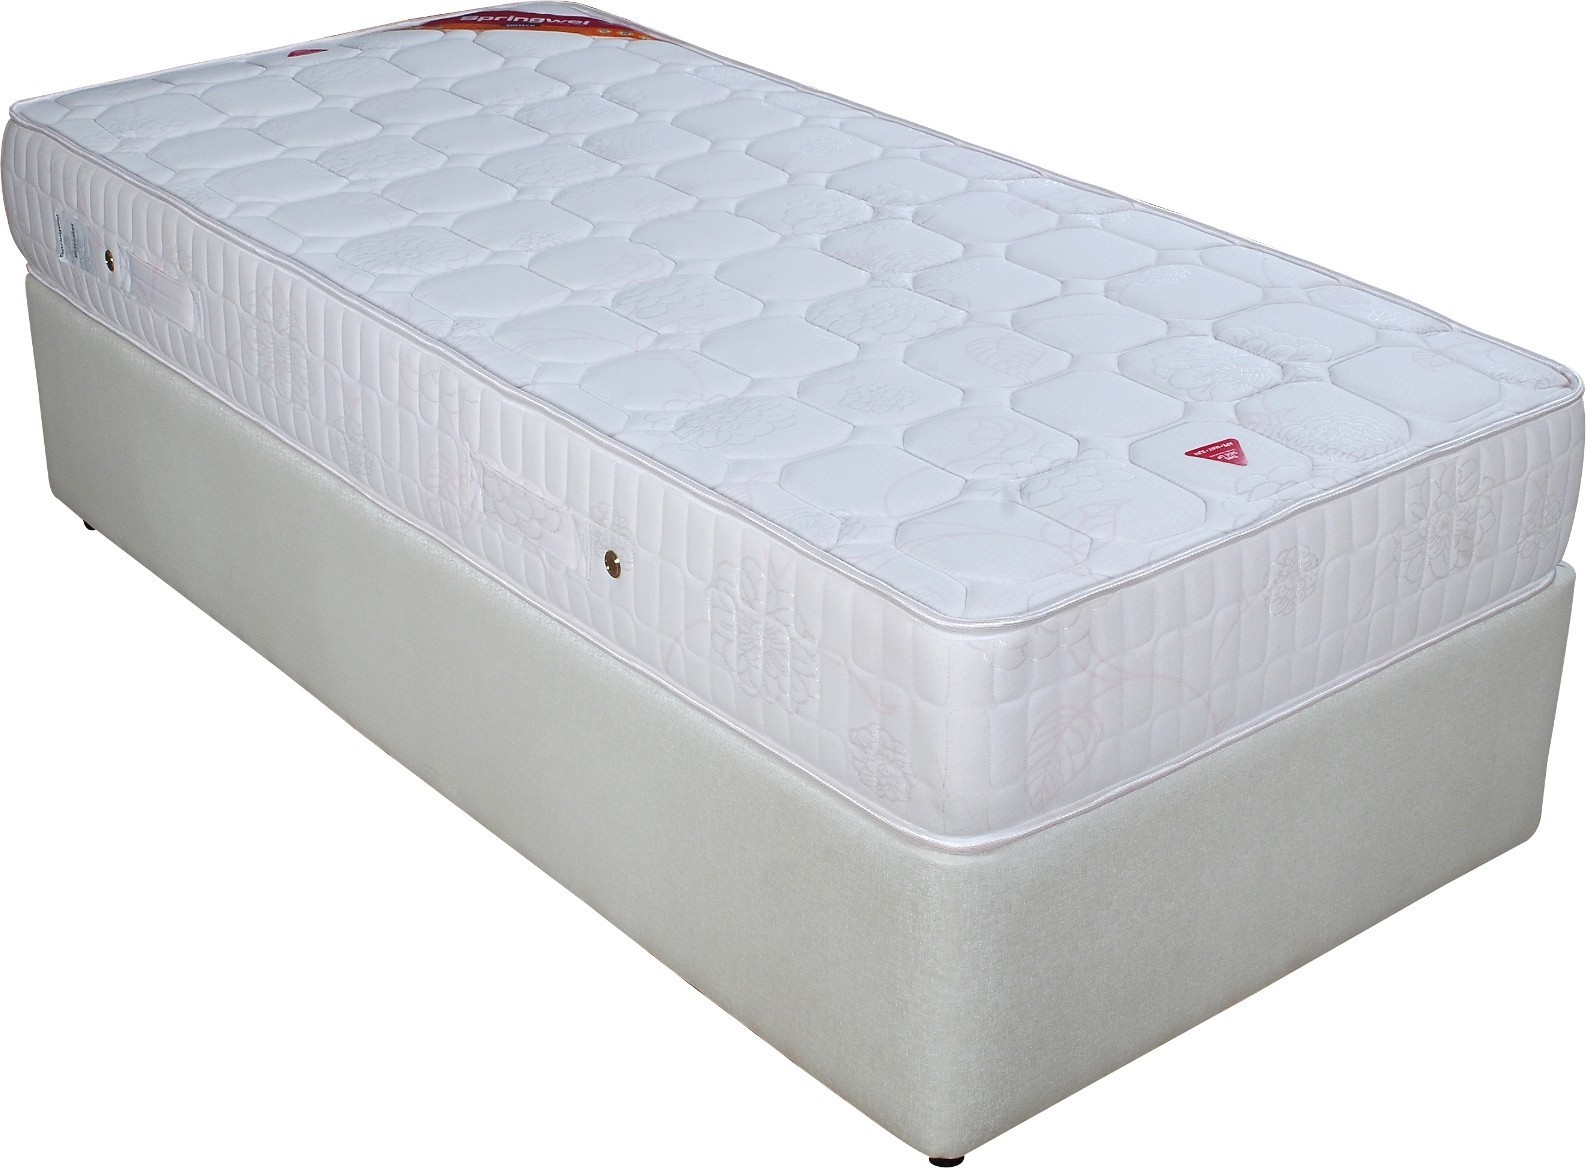 Springwel Softech Series 10 inch Single Spring Mattress